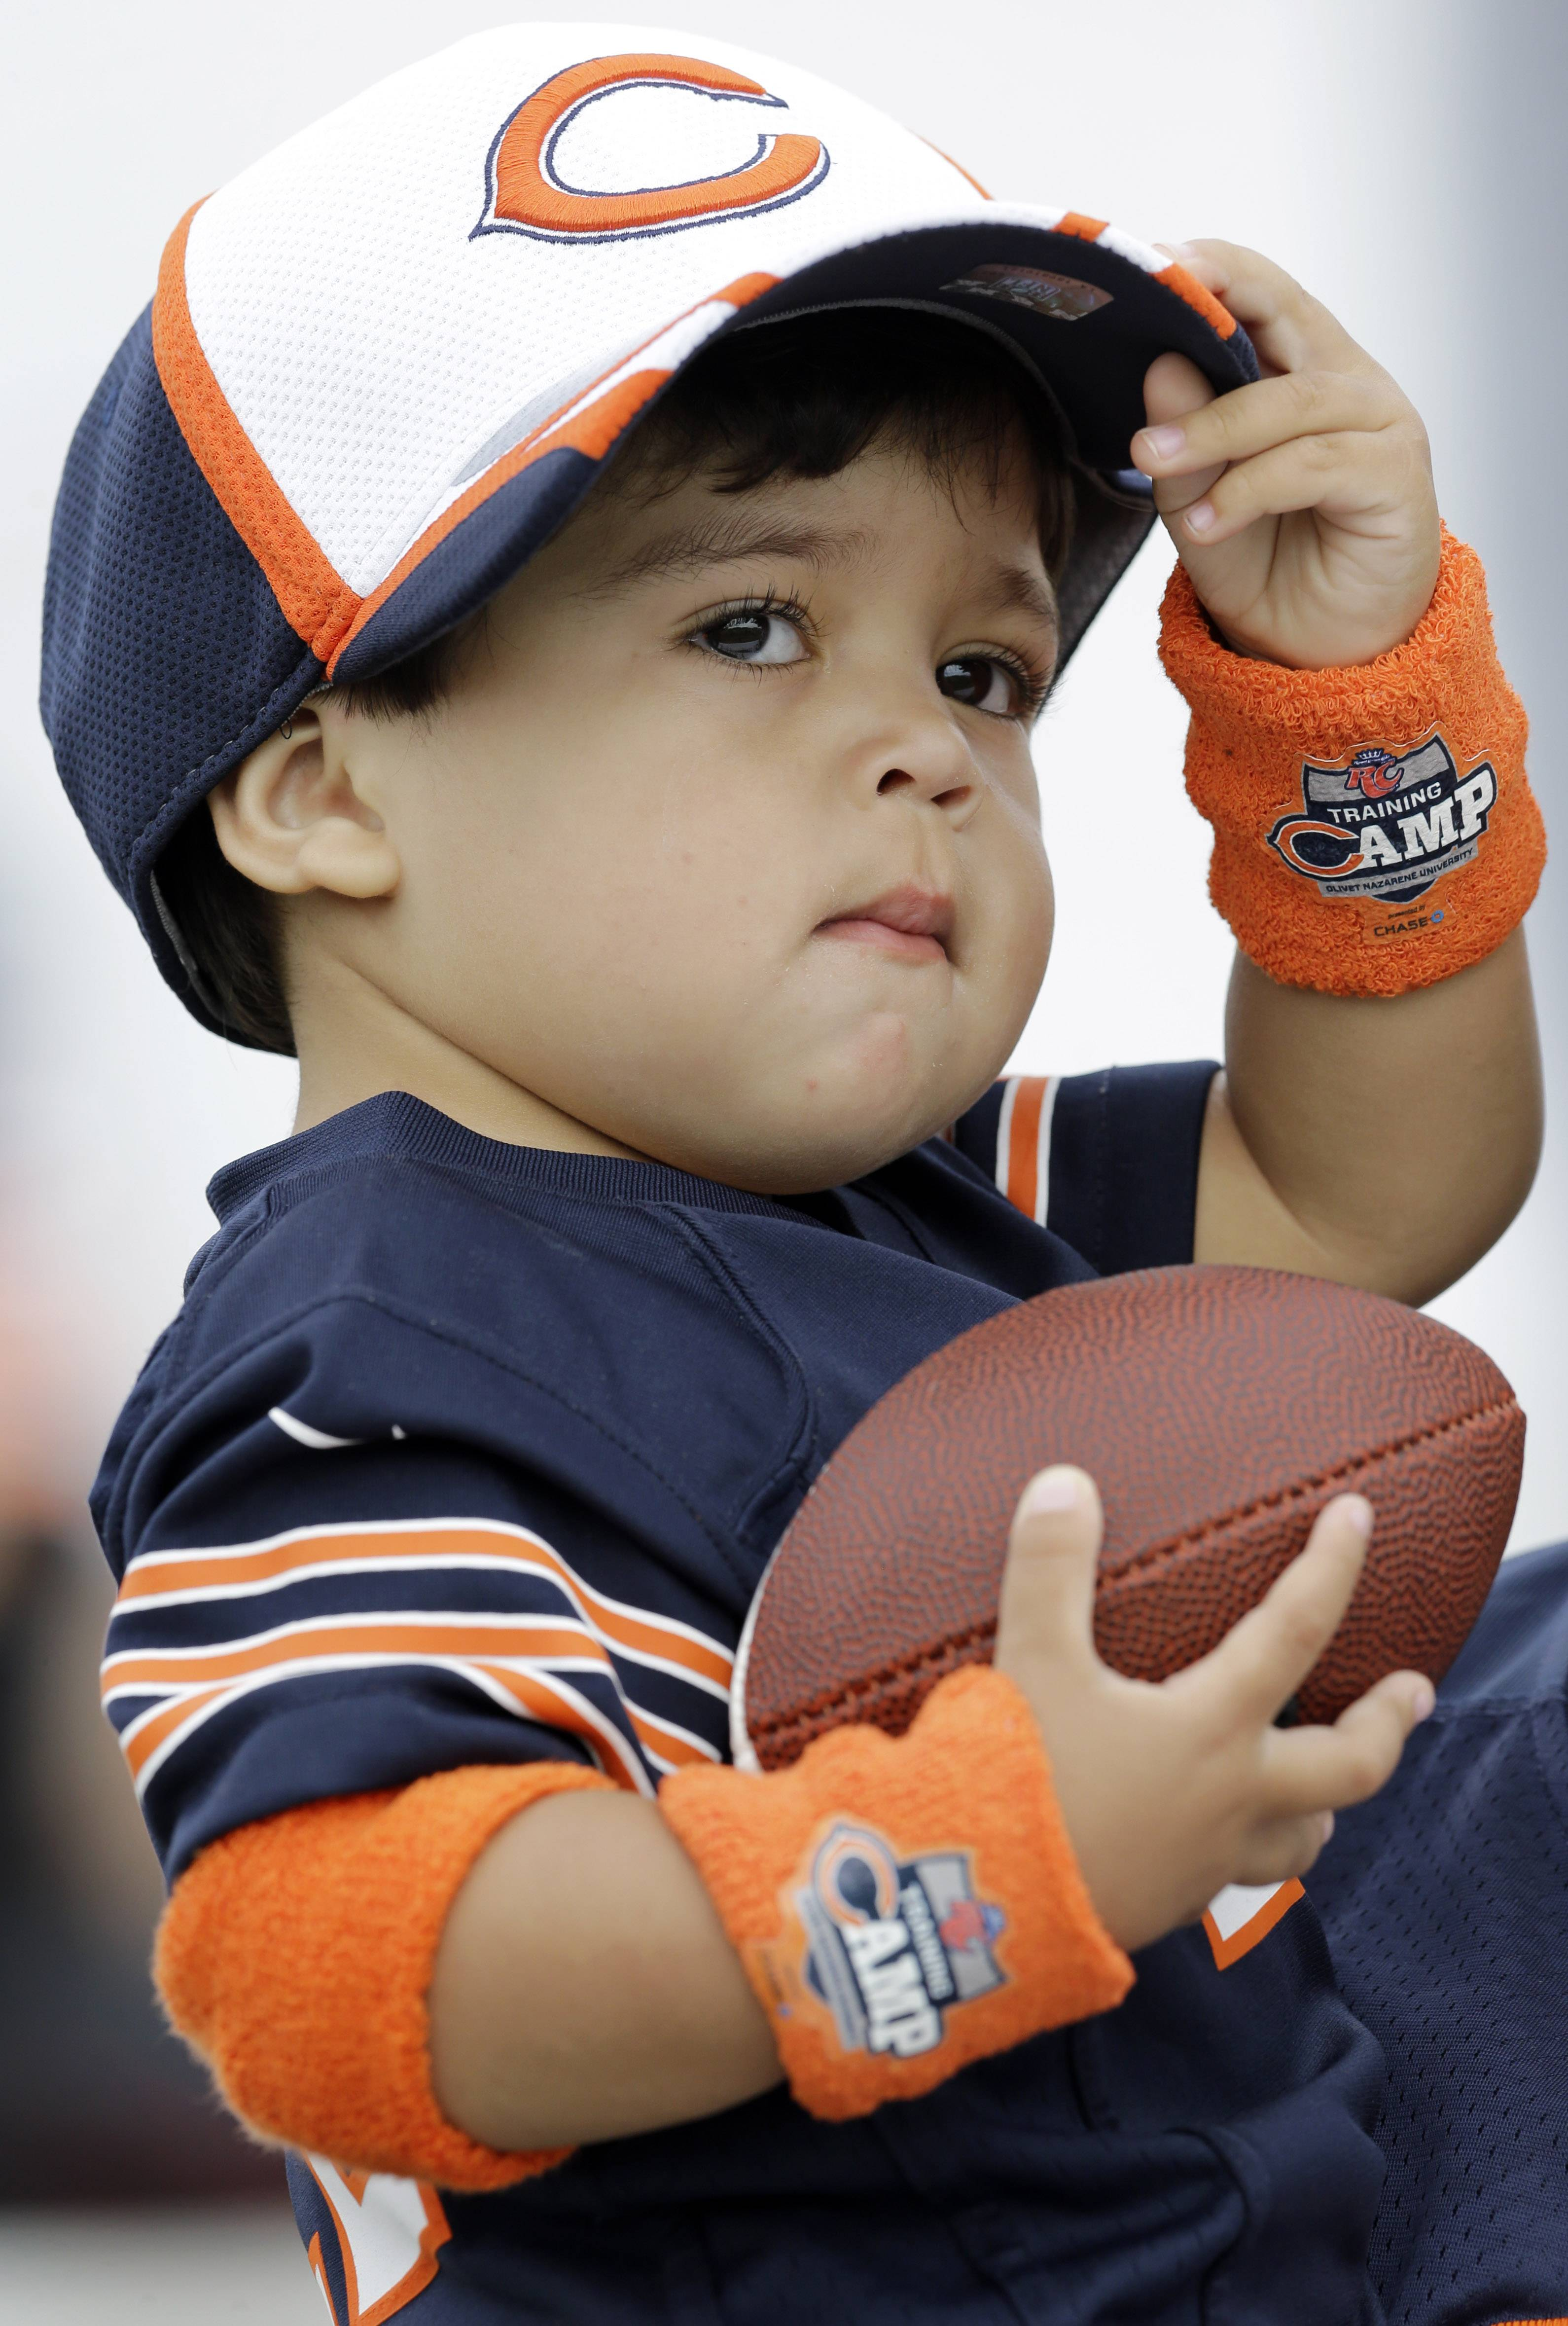 Jiraiya Dica, 2,  watches Chicago Bears players during the team's NFL football training camp at Olivet Nazarene University on Friday, July 25, 2014, in Bourbonnais, Ill.